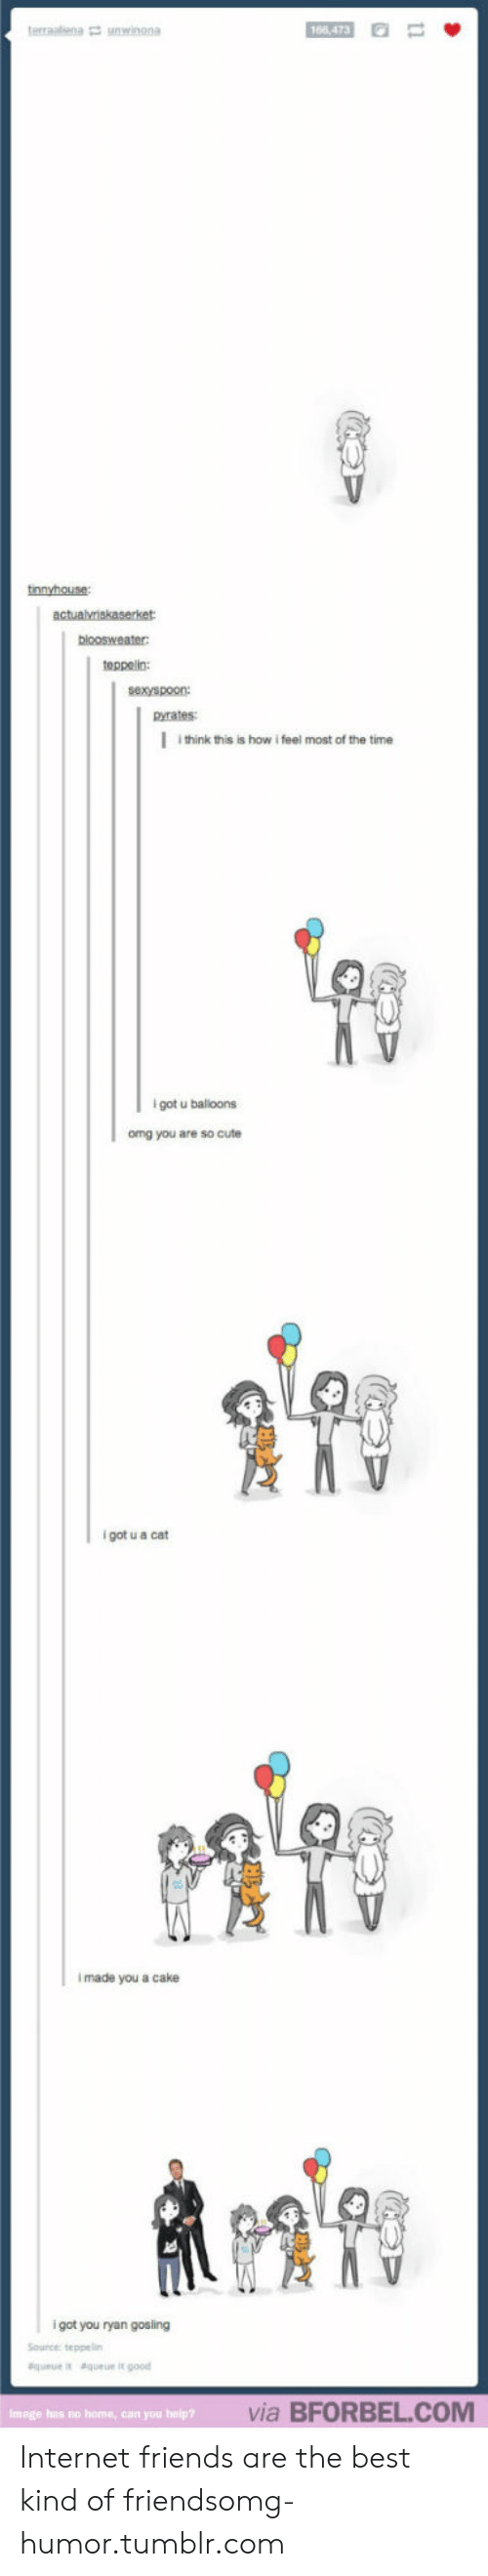 """Cute, Friends, and Internet: 166 473  tnnvhouse  teppelin:  sexyspoon  pyrates   i think this is how i feel most of the time  l got u balloons  omg you are so cute  i got u a cat  I made you a cake  i got you ryan gosing  Source:teppelin  &queue i""""  &queue it good  via BFORBEL.COM  Image has no home, can you Internet friends are the best kind of friendsomg-humor.tumblr.com"""